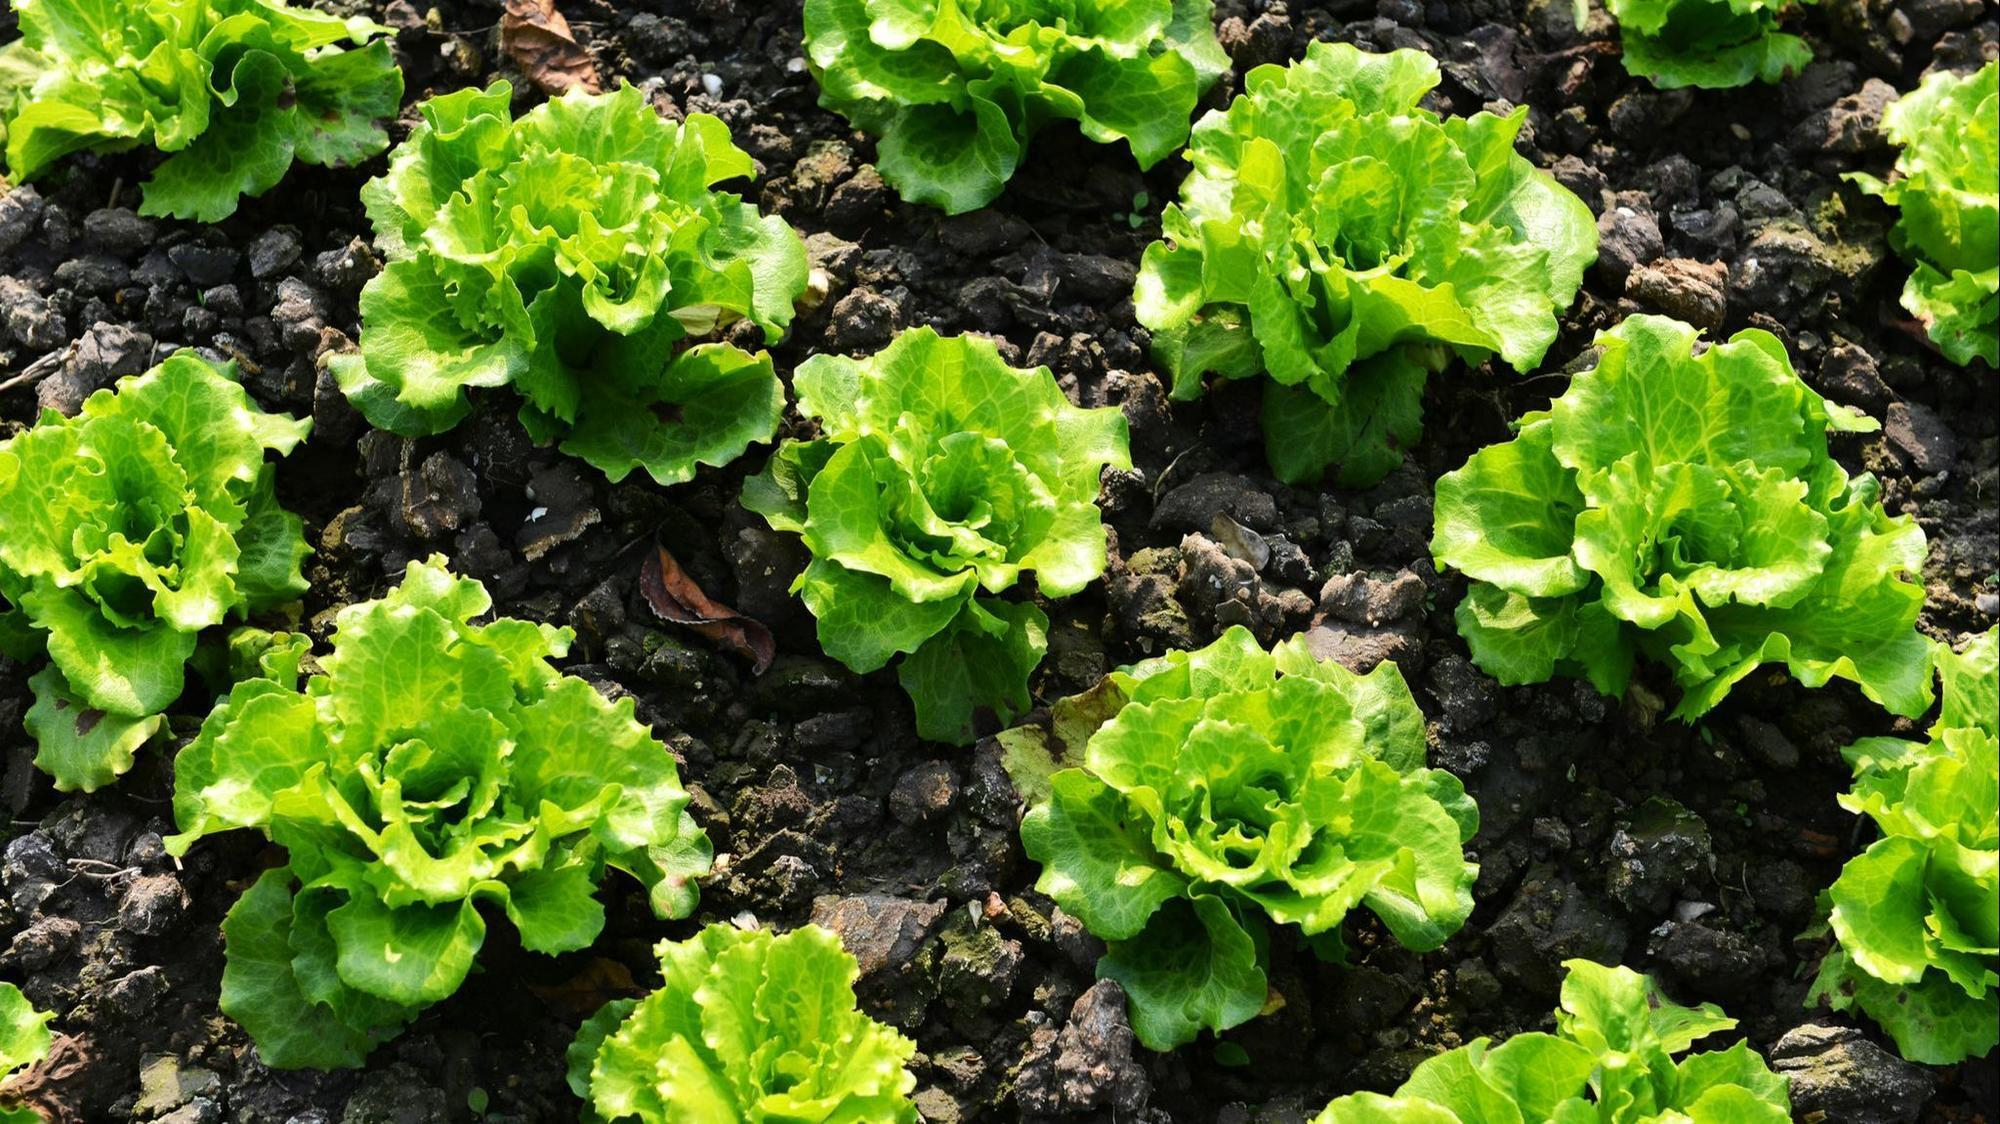 Update on E. coli outbreak from romaine lettuce - Orlando ...